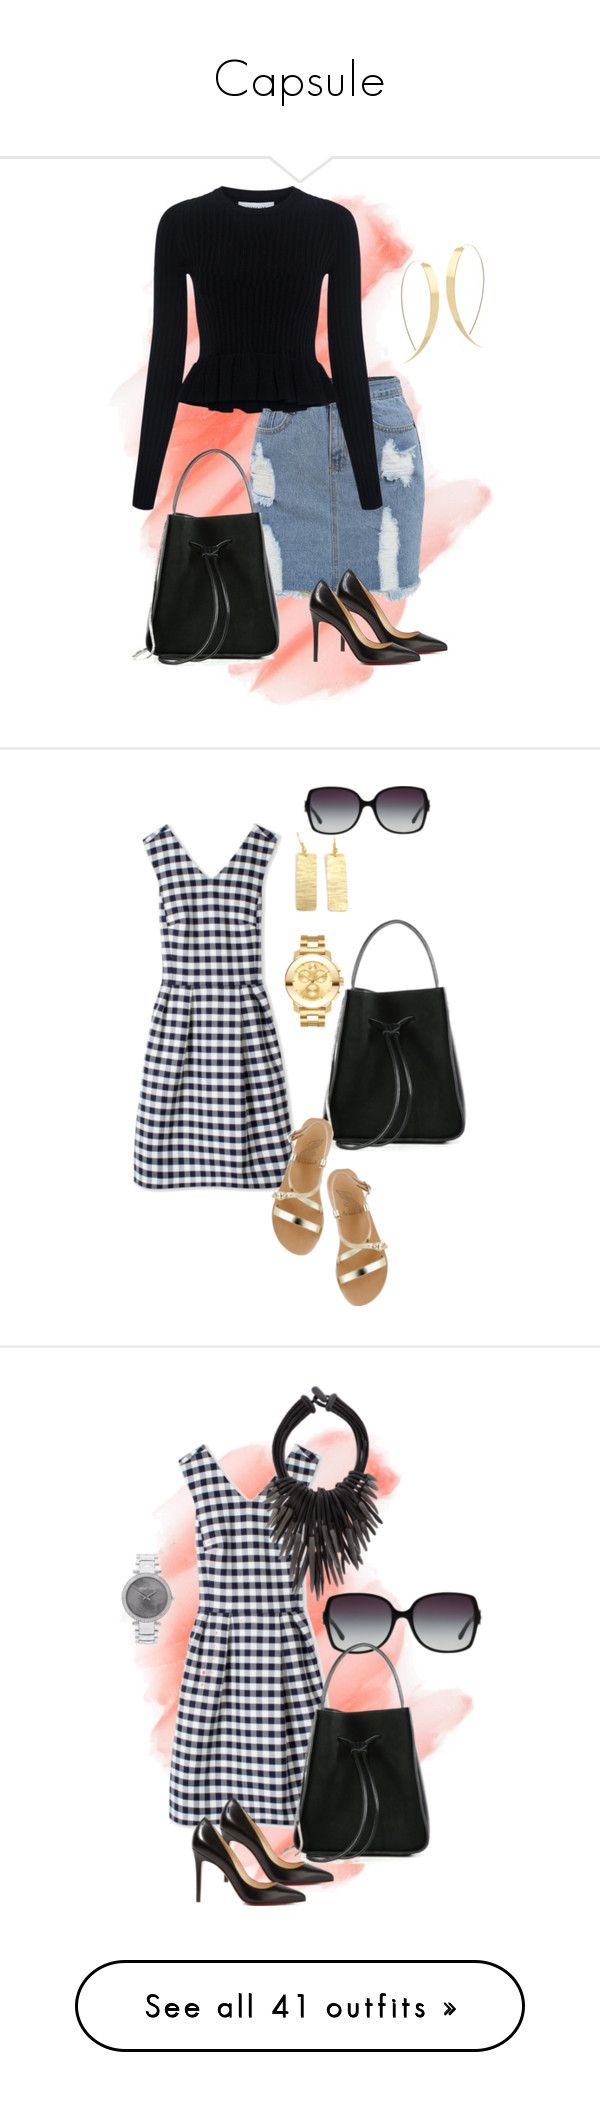 """""""Capsule"""" by tammy-stacey ❤ liked on Polyvore featuring Birchrose + Co., 10 Crosby Derek Lam, Christian Louboutin, Lana, 3.1 Phillip Lim, PS Paul Smith, Ancient Greek Sandals, Movado, Bulgari and Eskandar"""